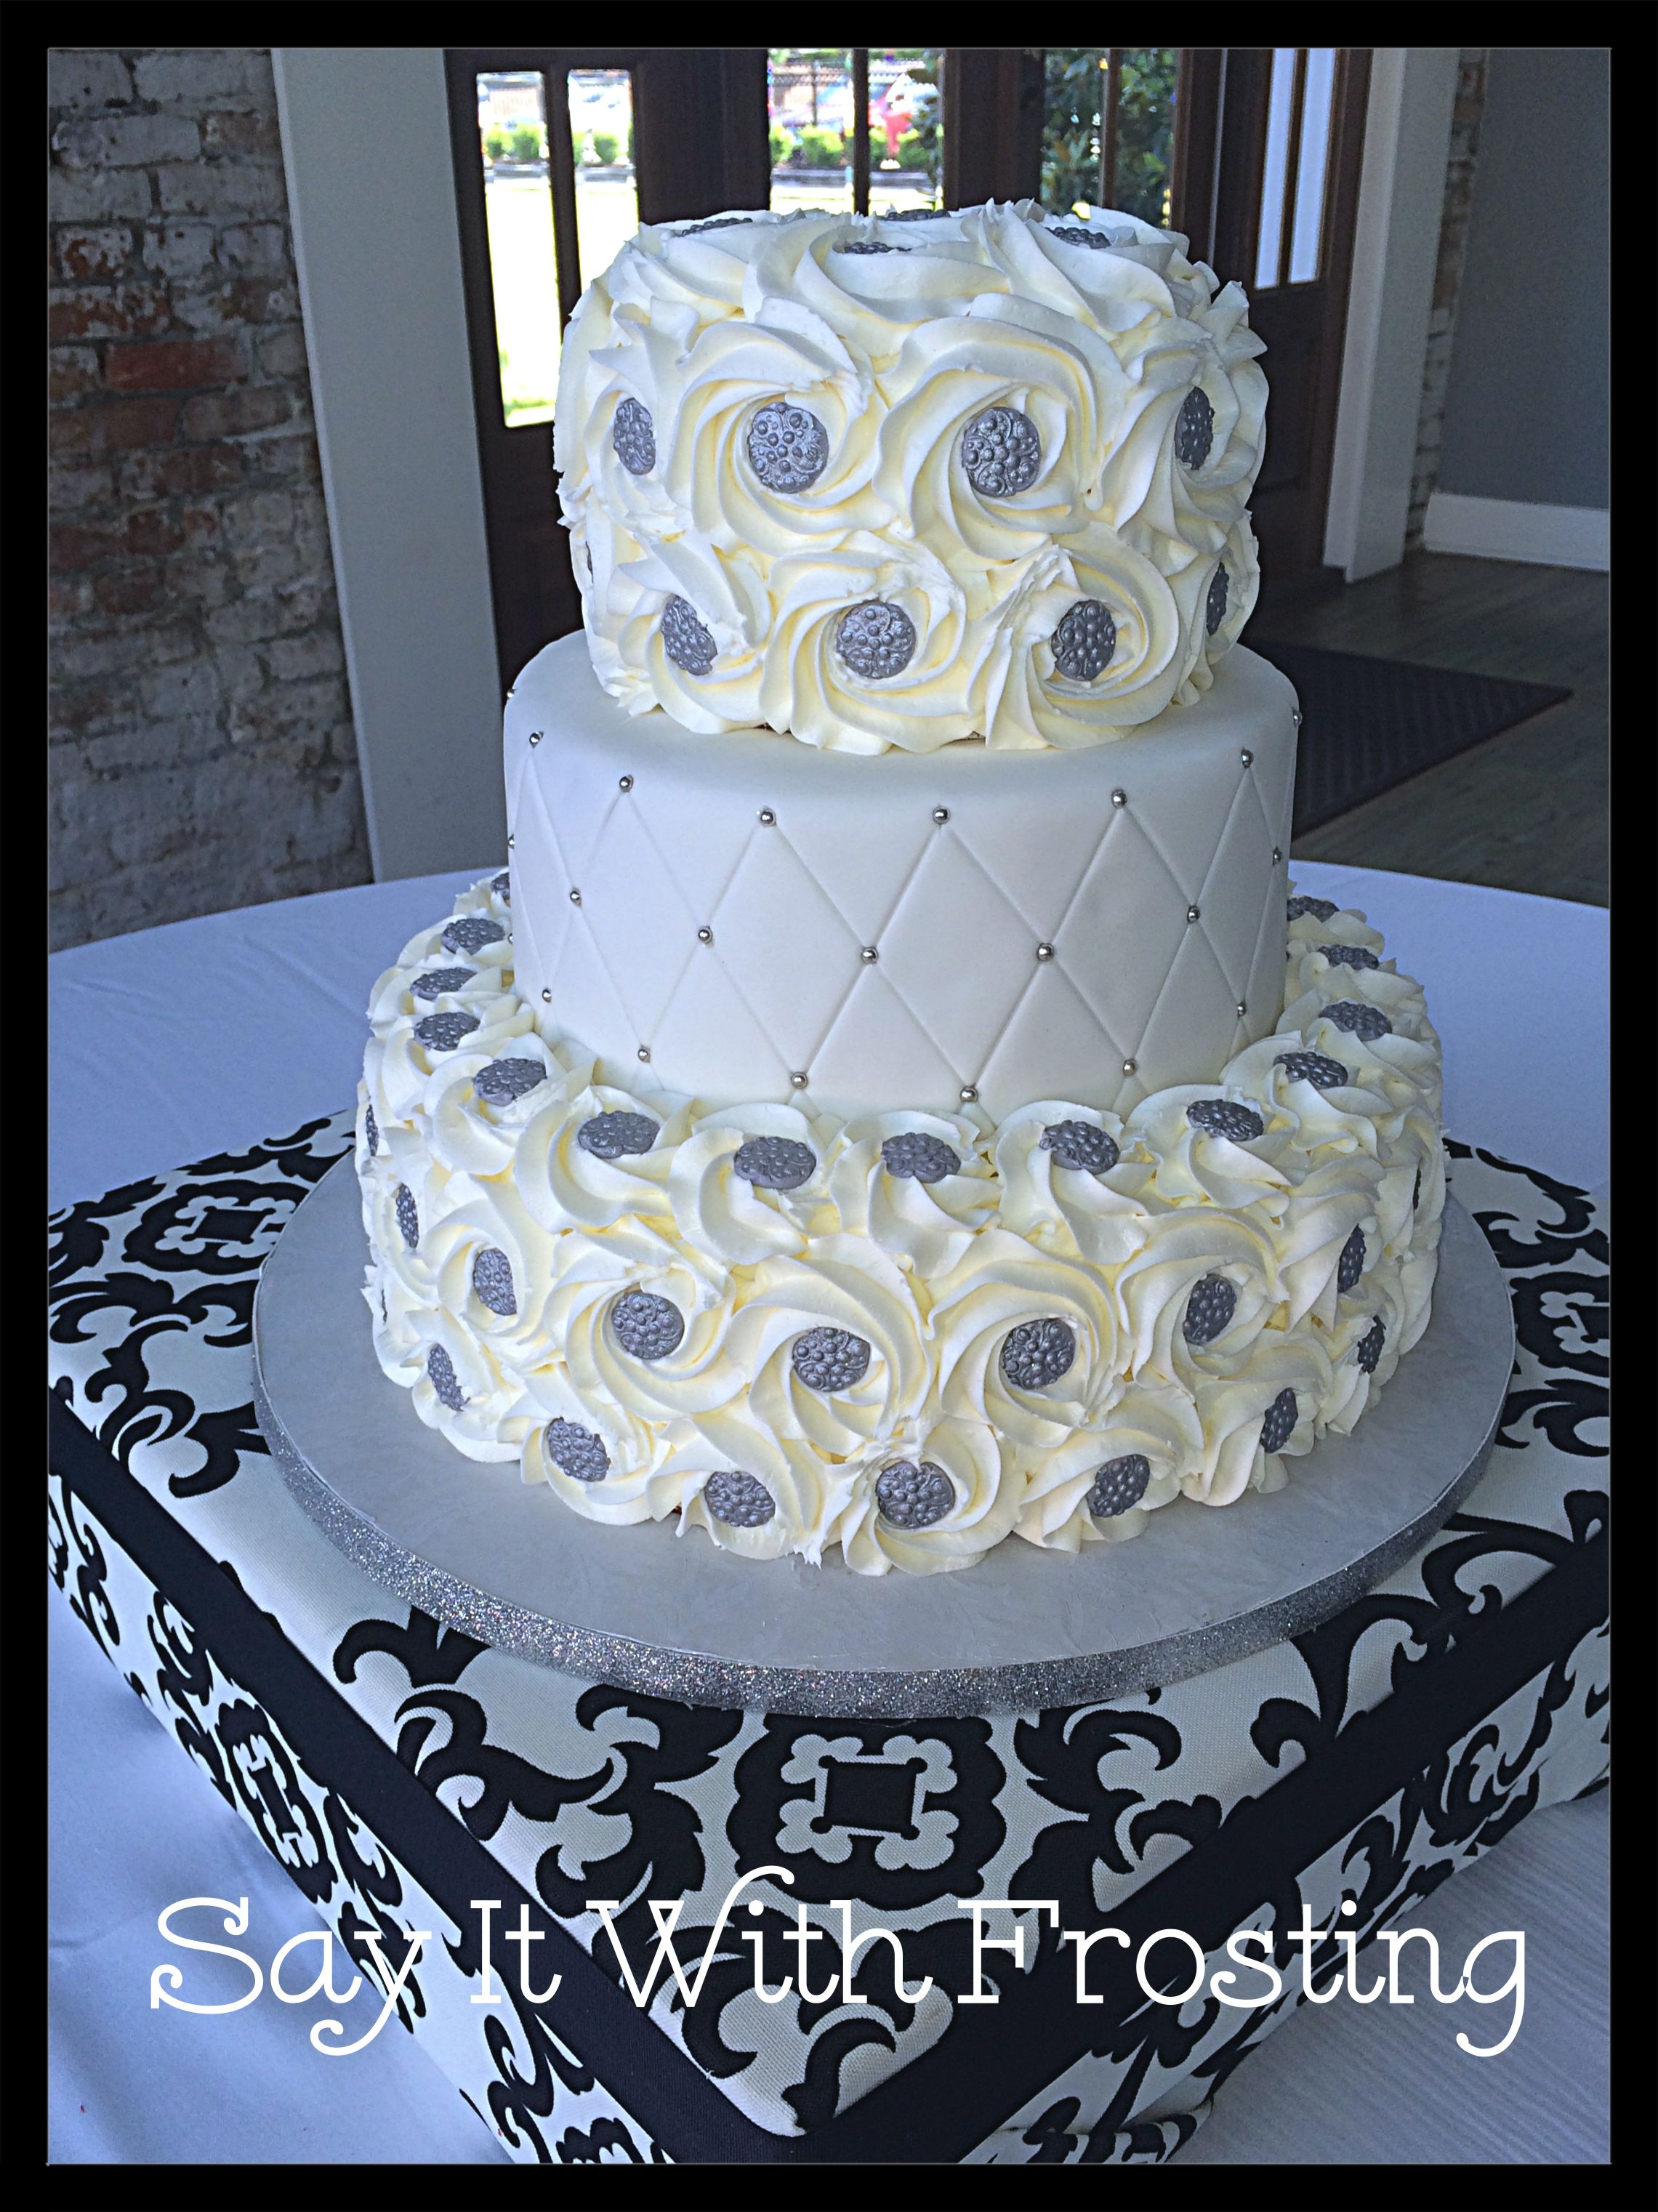 Pensacola Wedding Cakes Custom Cake With Buttercream Rosettes And Modeling Chocolate Medallions Made